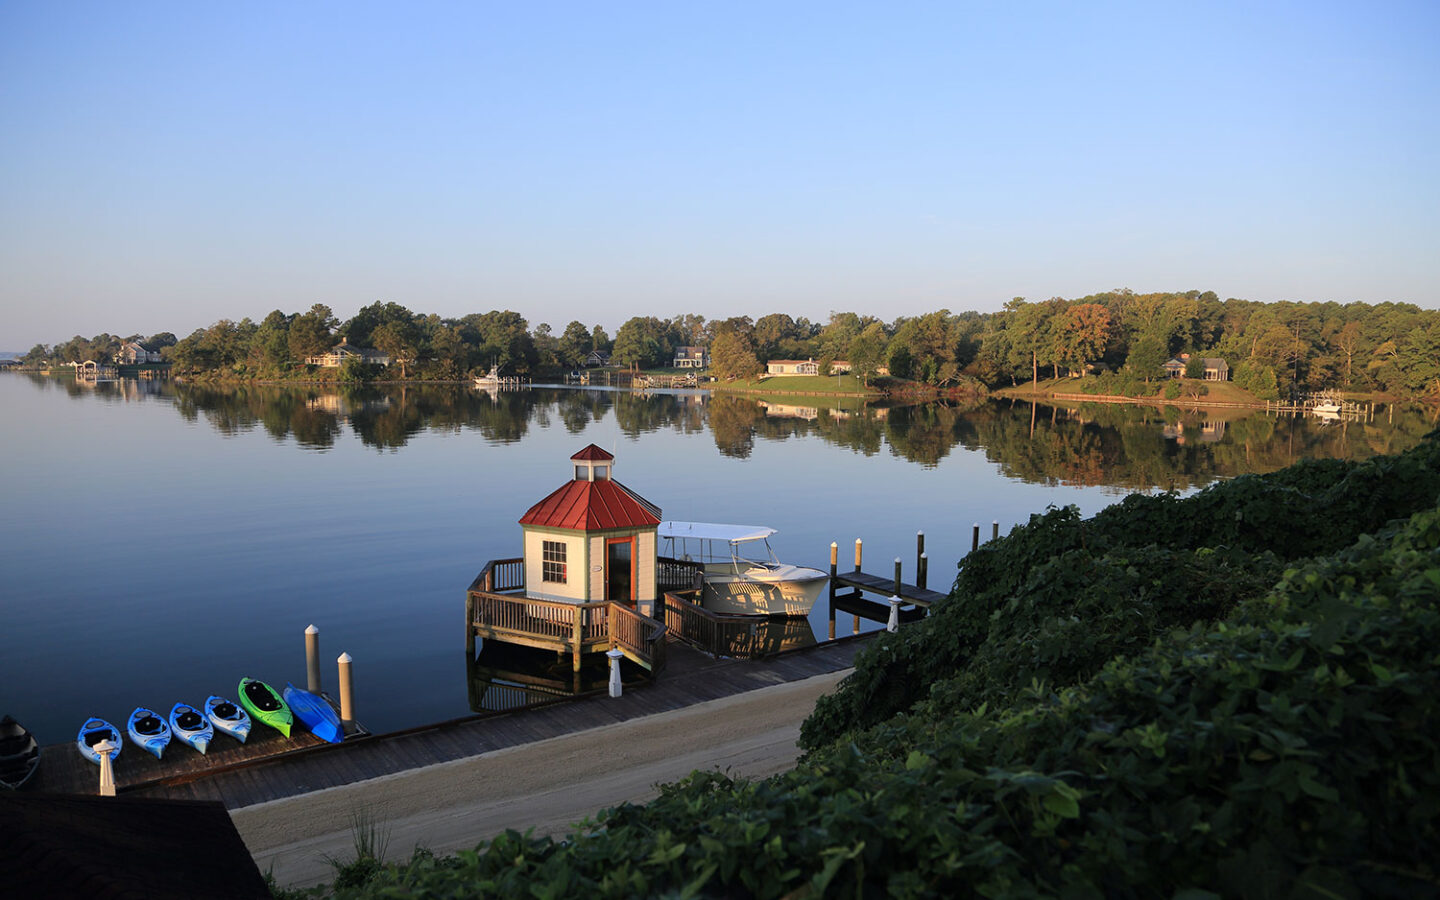 lake with a dock next to a small gazebo with a red roof